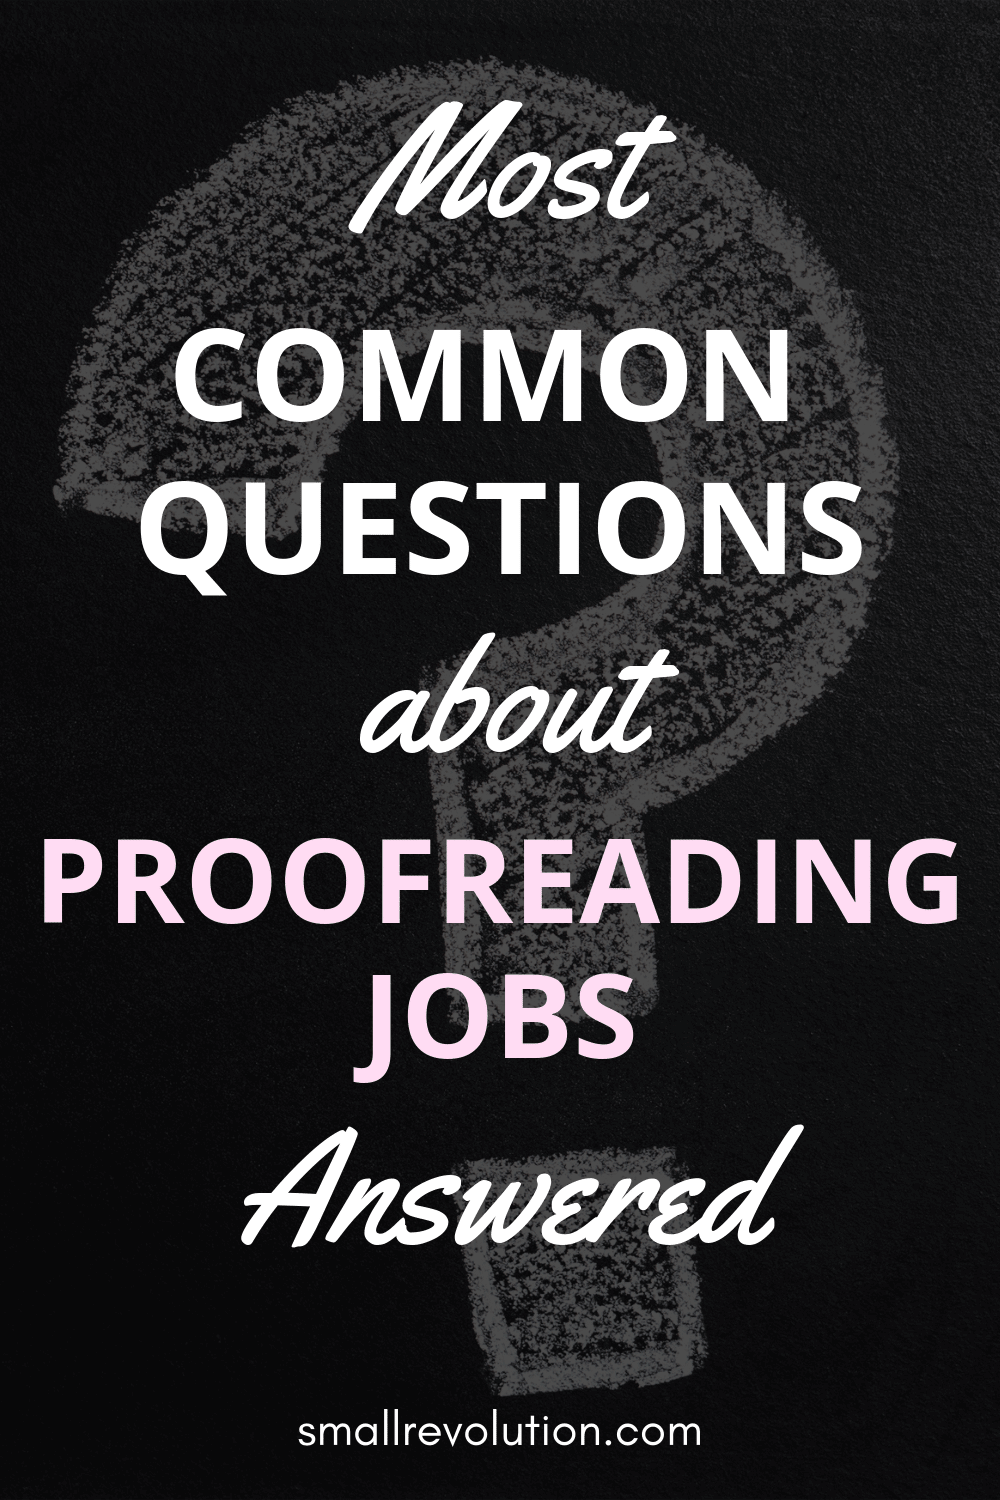 Most common questions about proofreading jobs